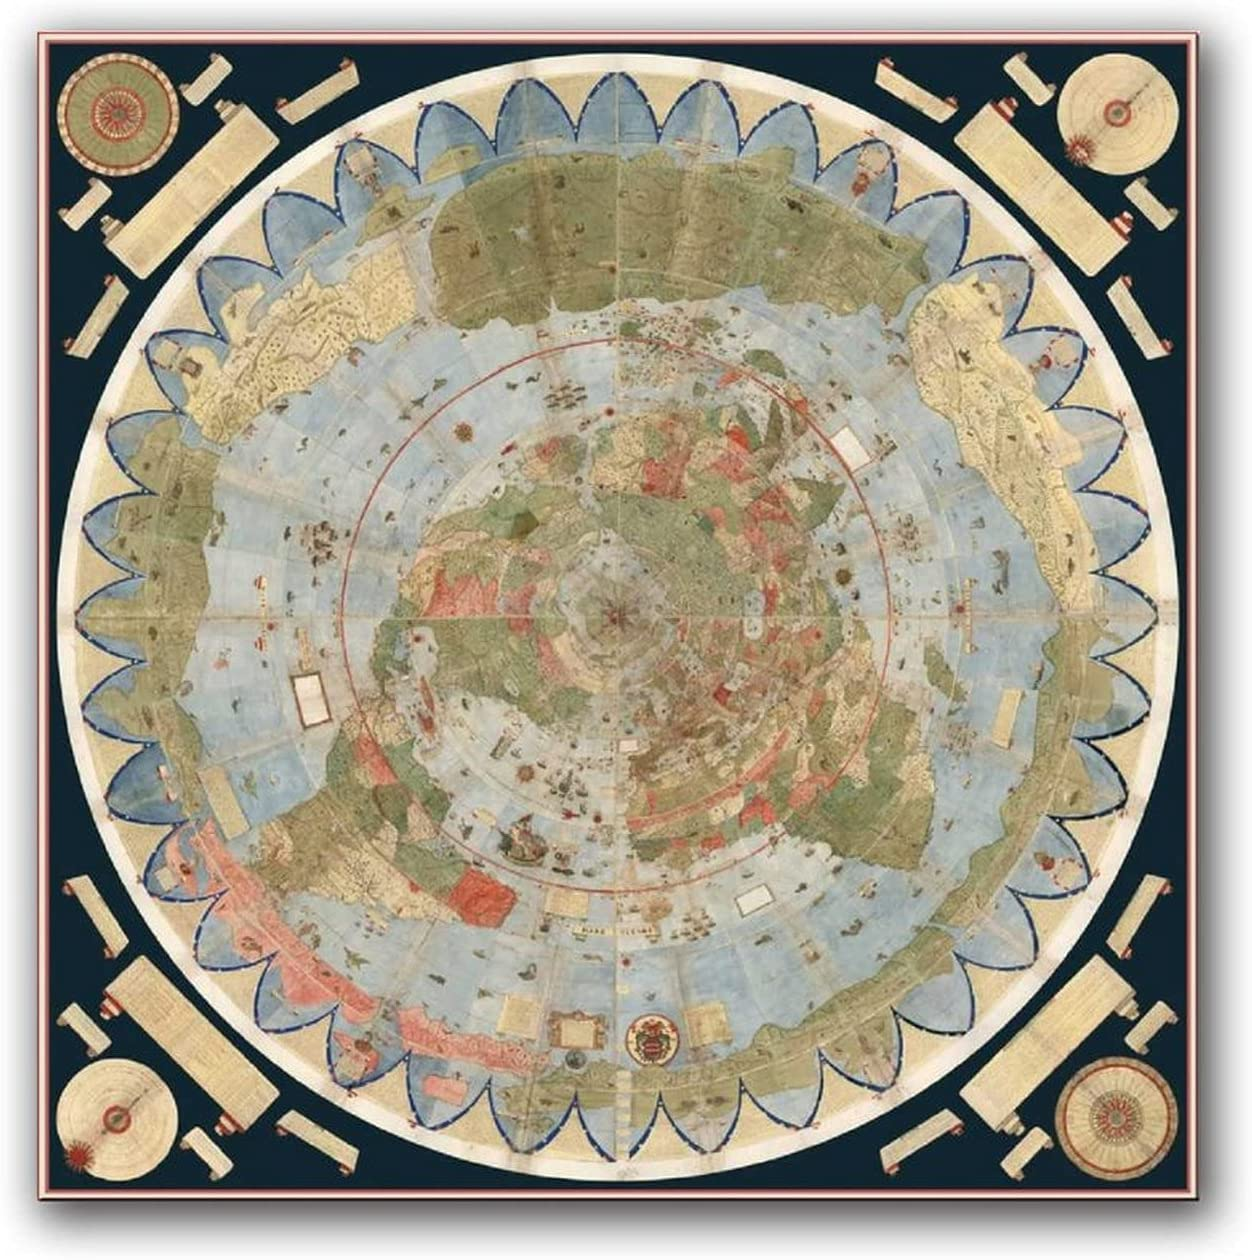 OFFicial mail order FINDEMO Tierra Plana Mapa Antiguo Decorative Can Painting High quality Poster